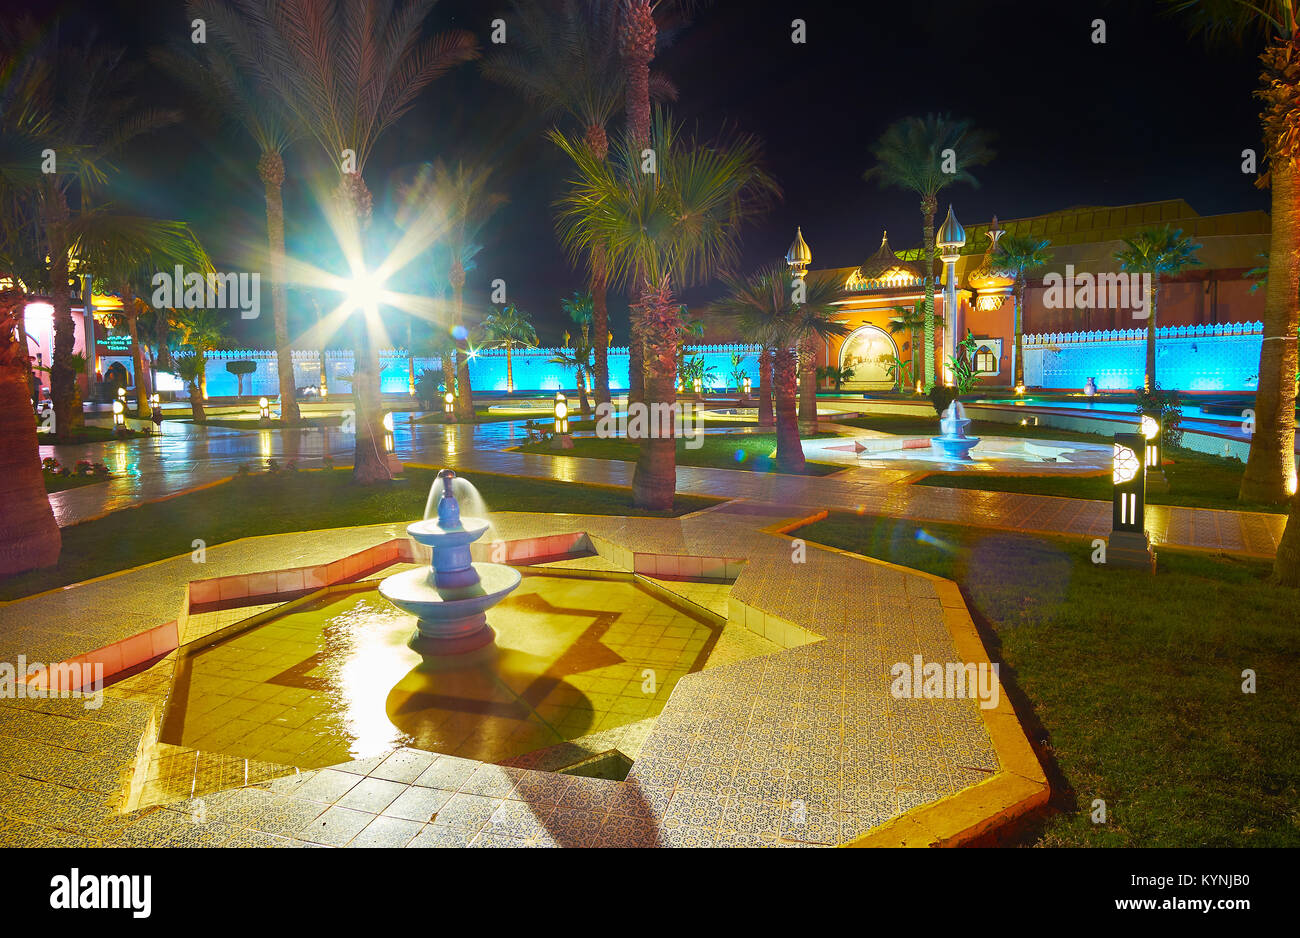 The scenic fountain, decorated with al Quds star - famous Islamic symbol, located in garden at the Fantasia palace - Stock Image